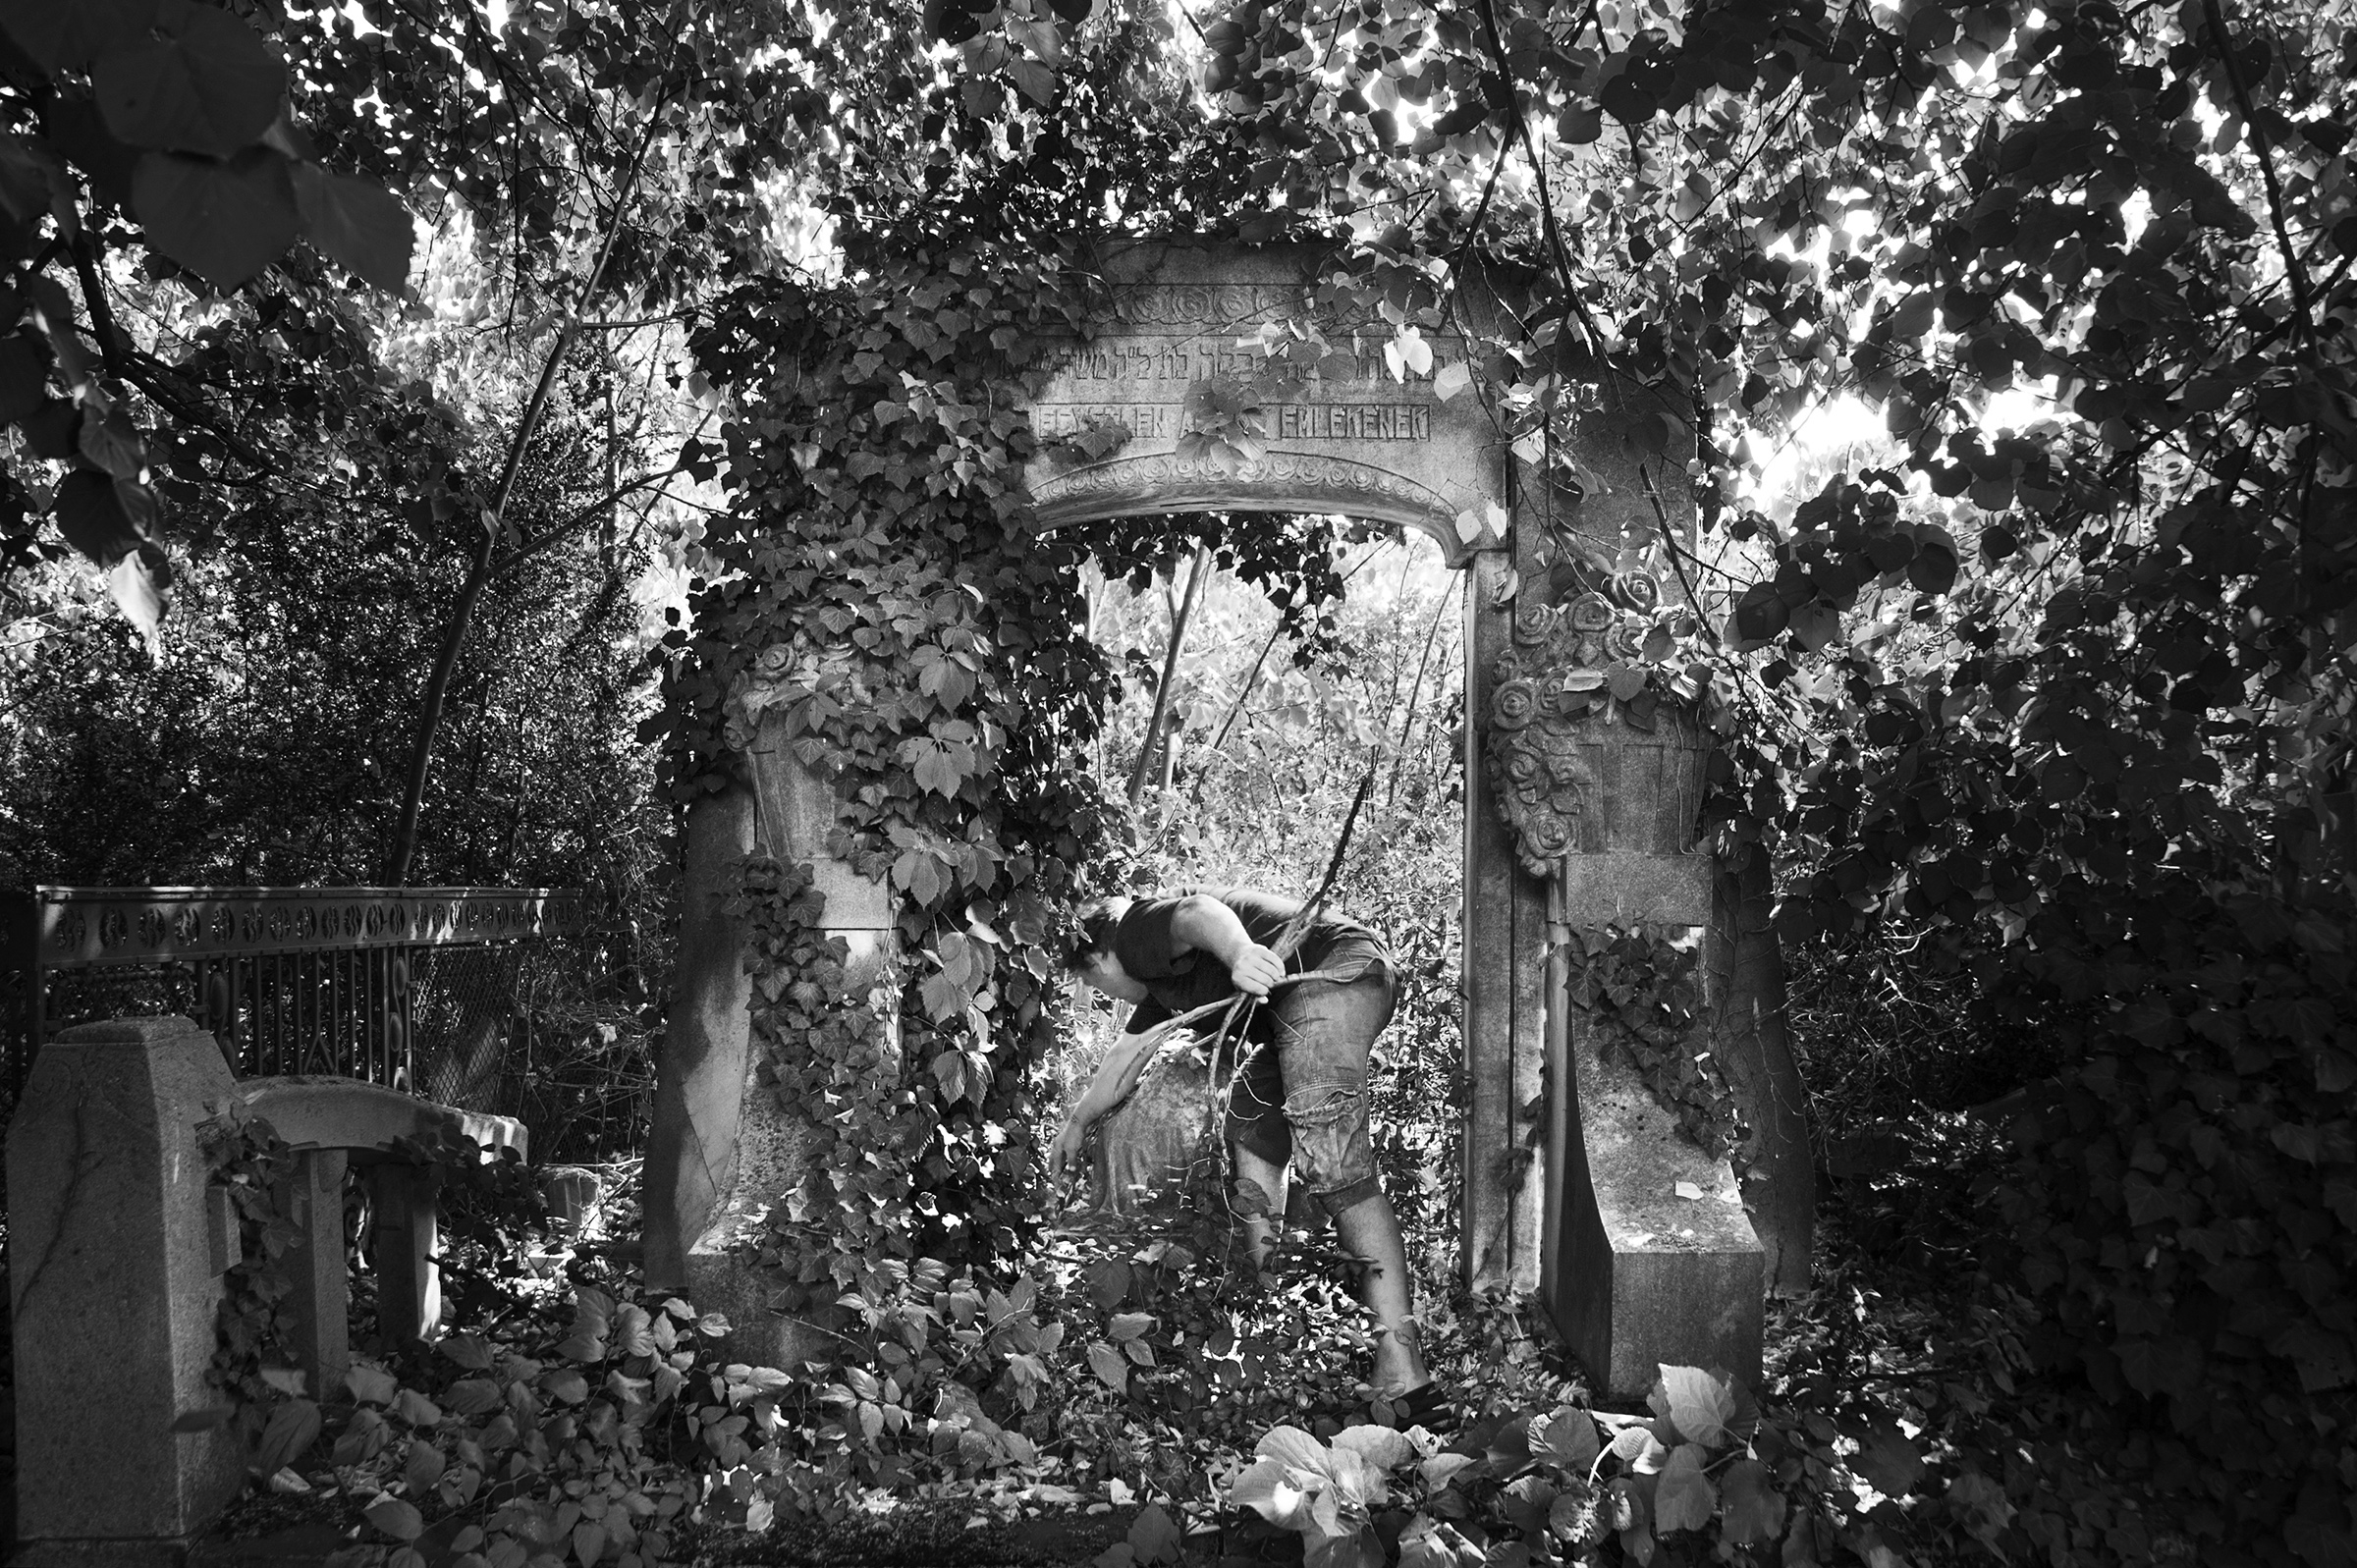 A maintenance worker in Oradea's Neologic cemetery clears away small debree from a gravesite that has been overrun with vegetation on August 25, 2013. (Photo by Daniel Owen/GroundTruth)